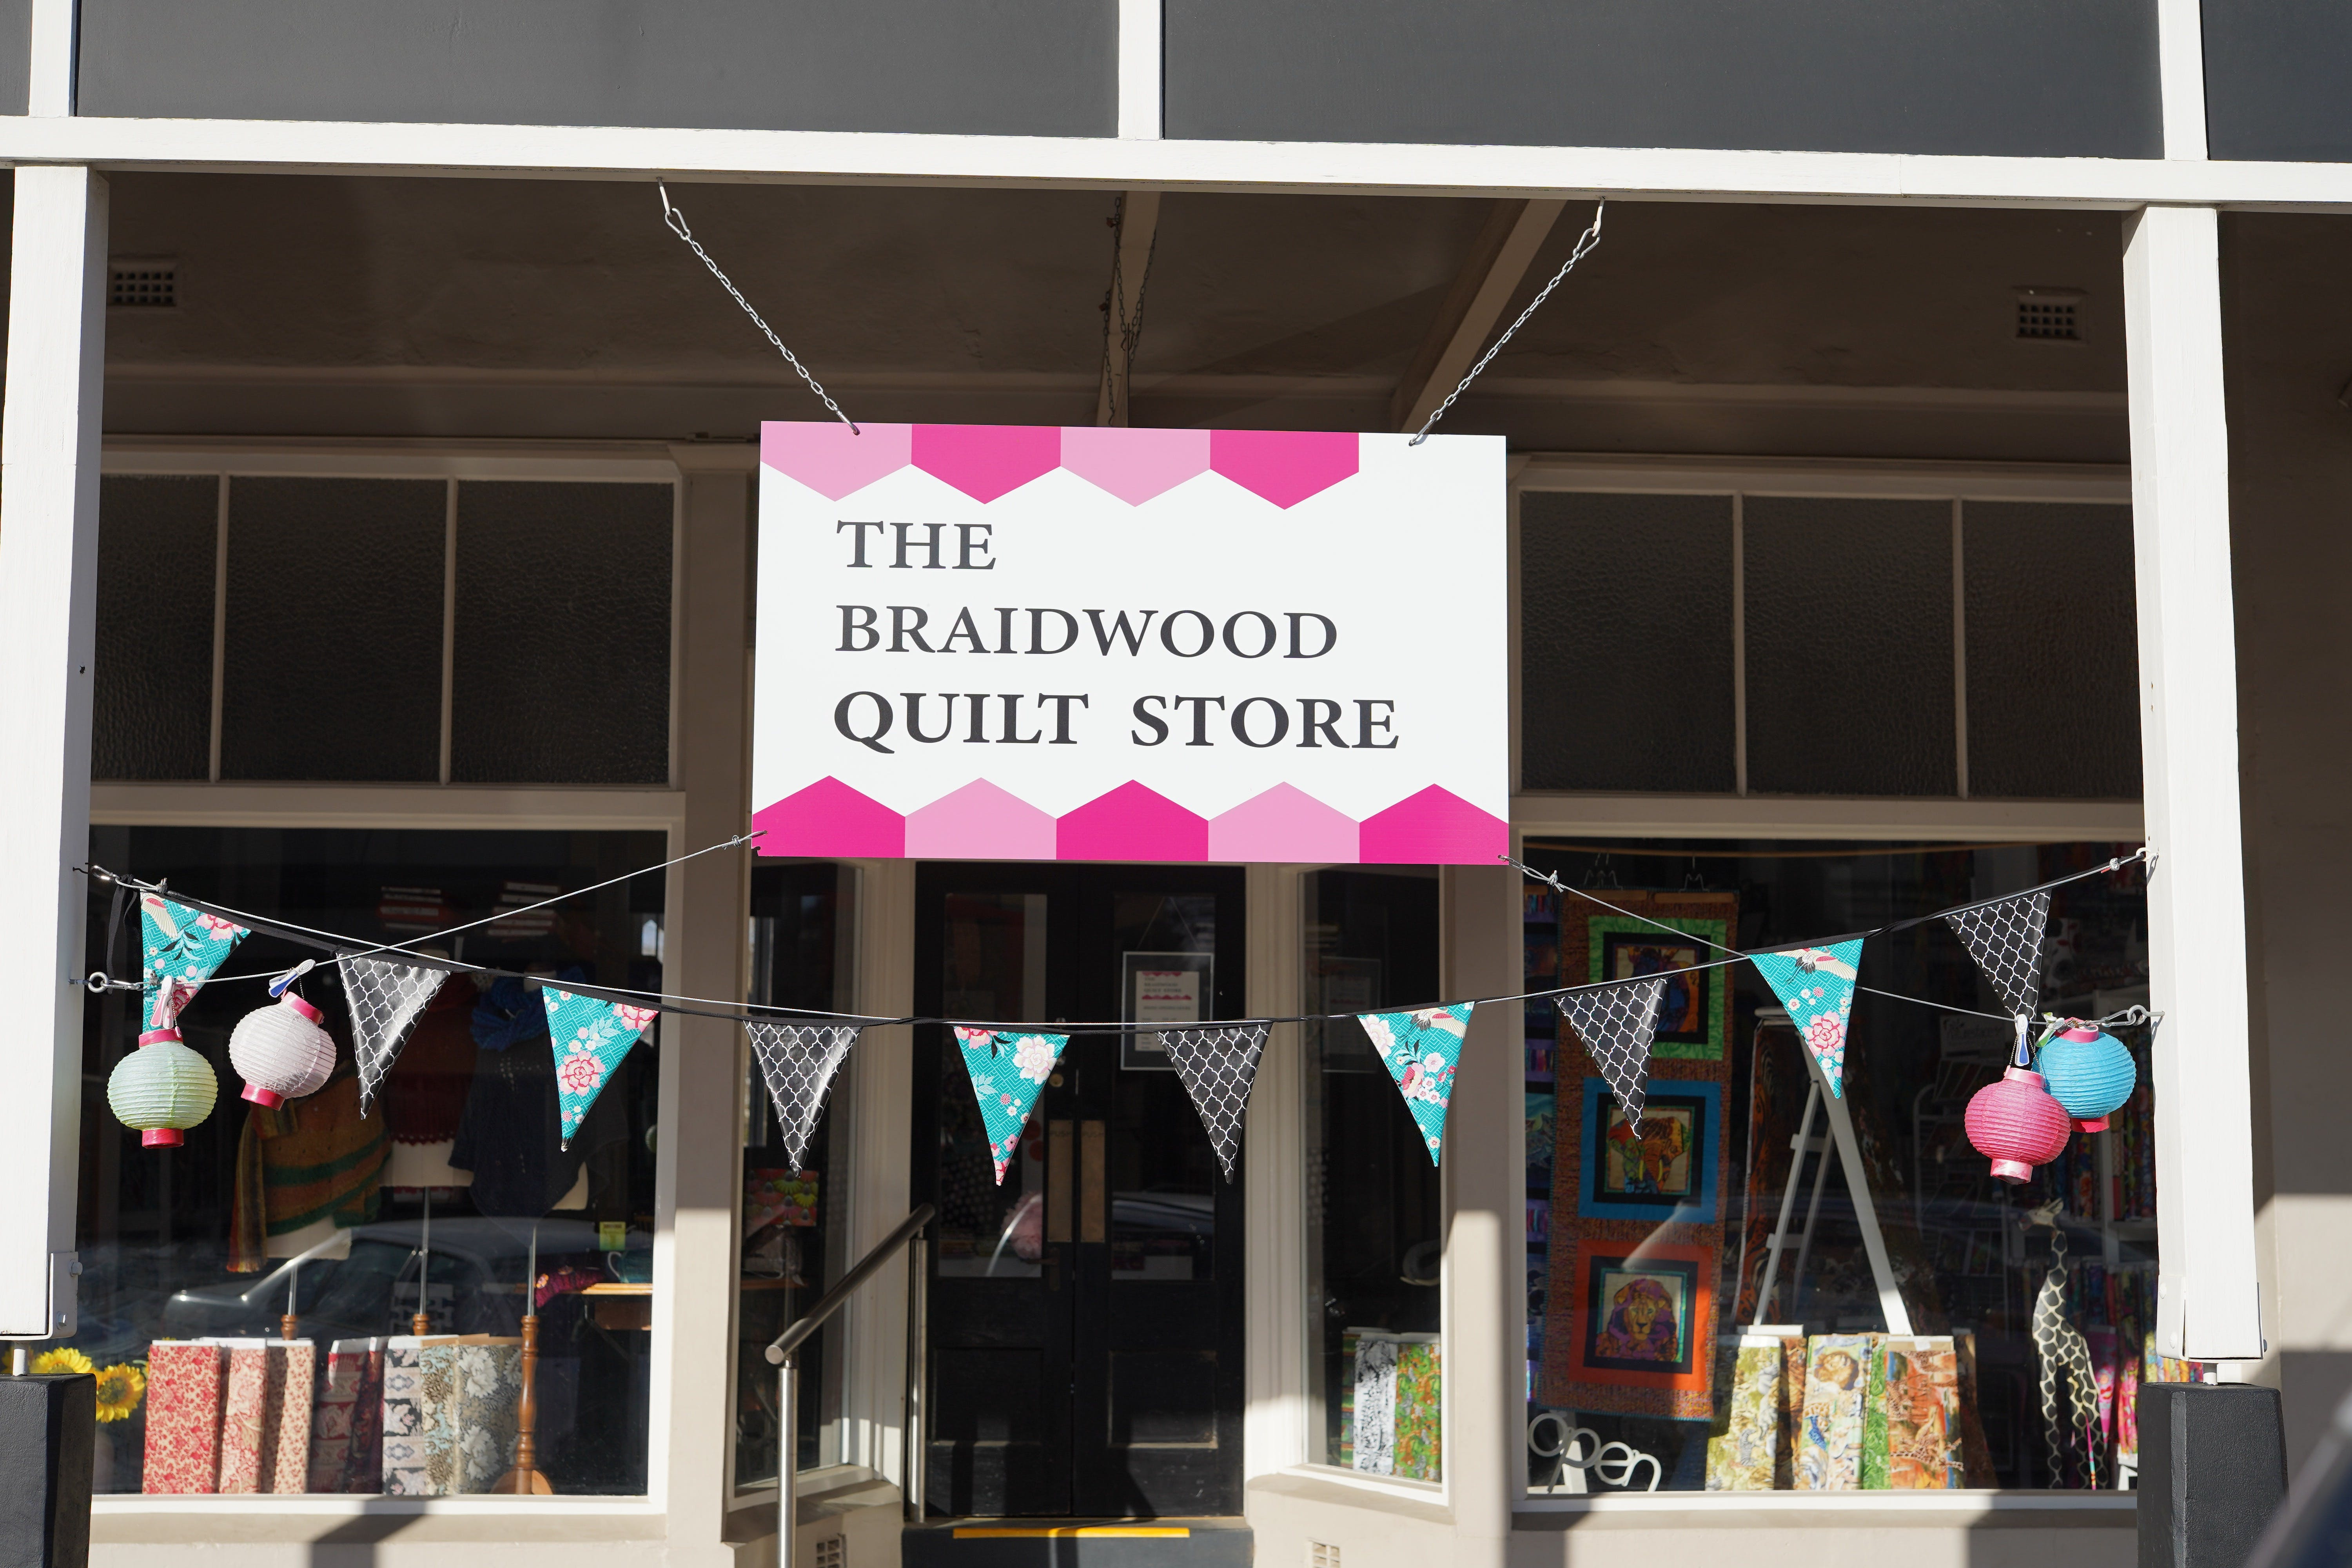 The Braidwood Quilt Store - Accommodation in Bendigo